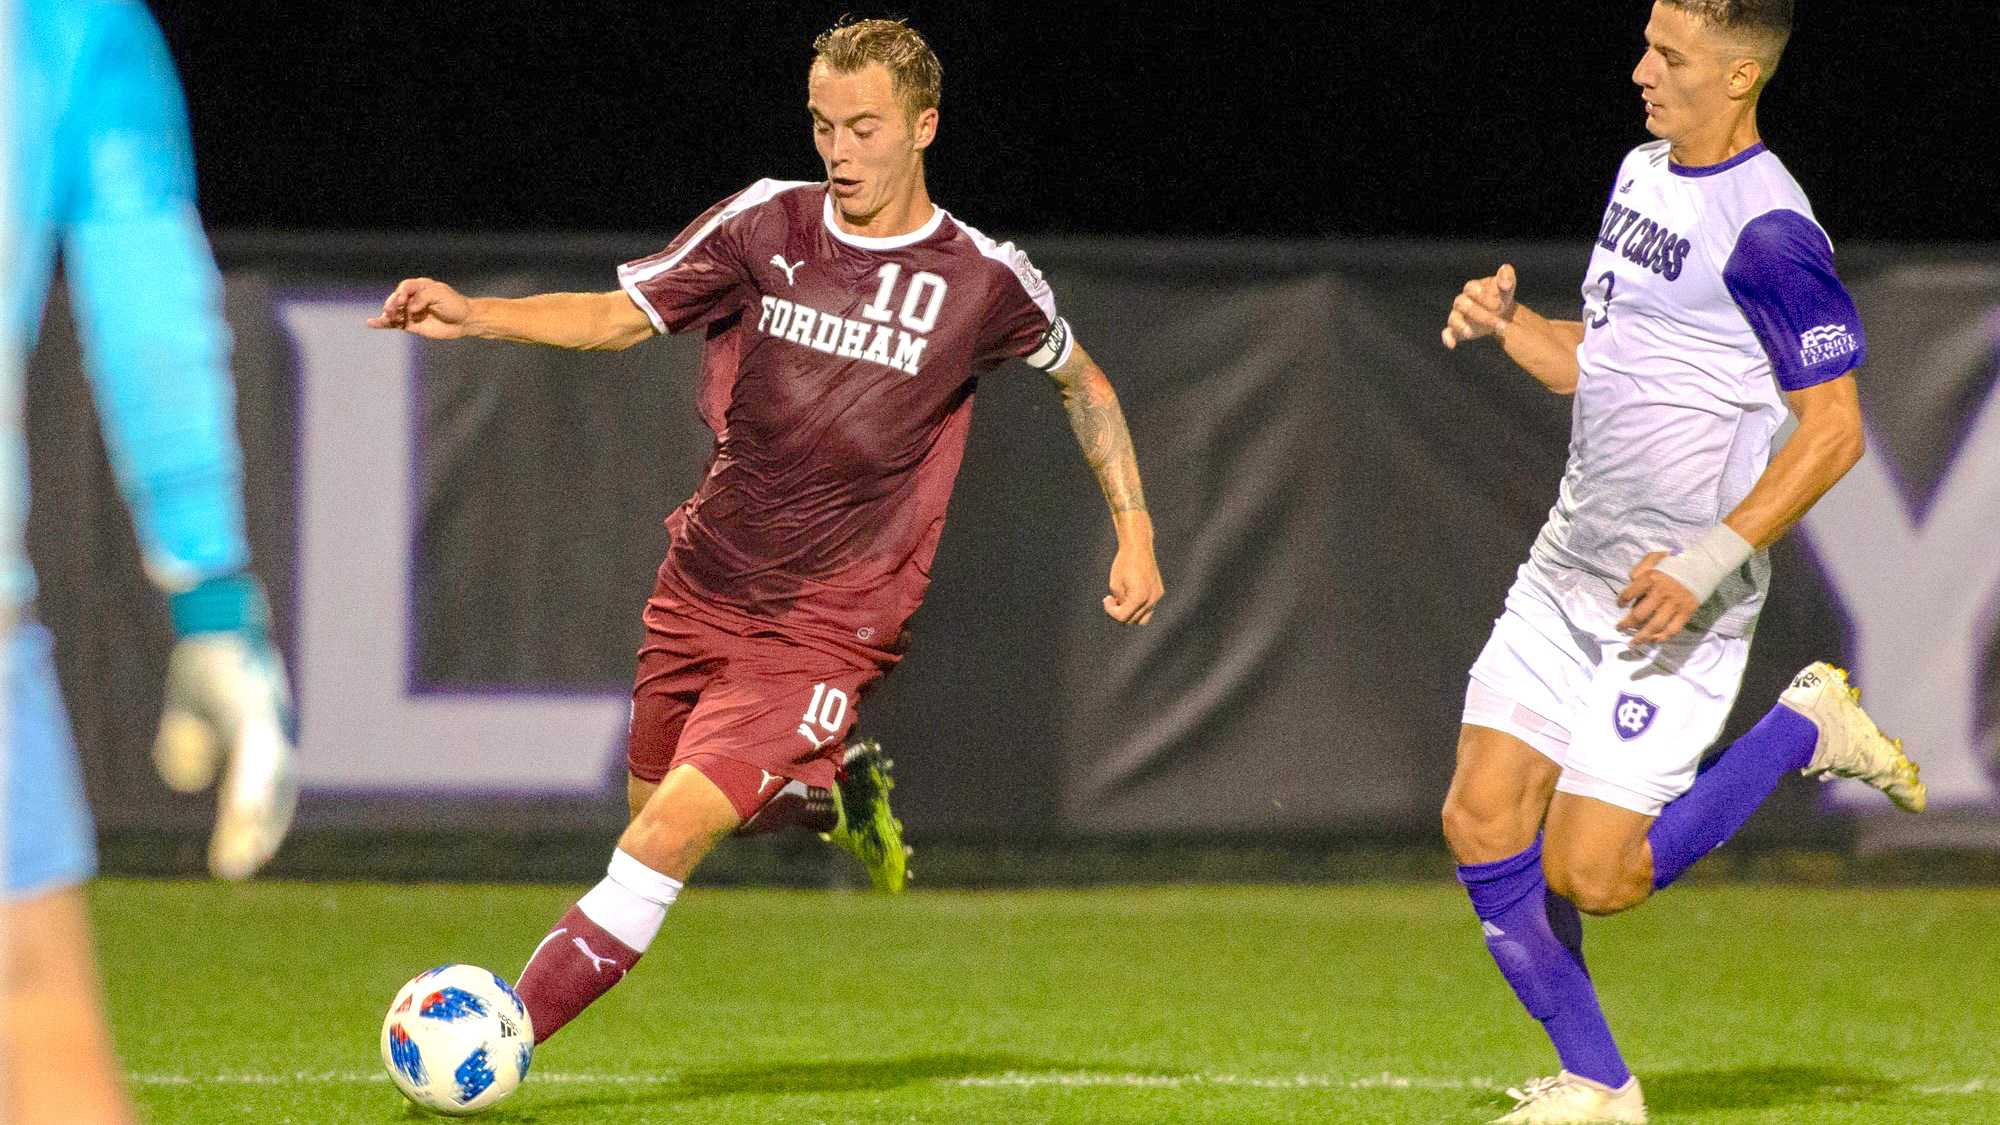 Janos Loebe (10) makes a play on the ball during the most recent season. (Courtesy of Fordham Athletics)